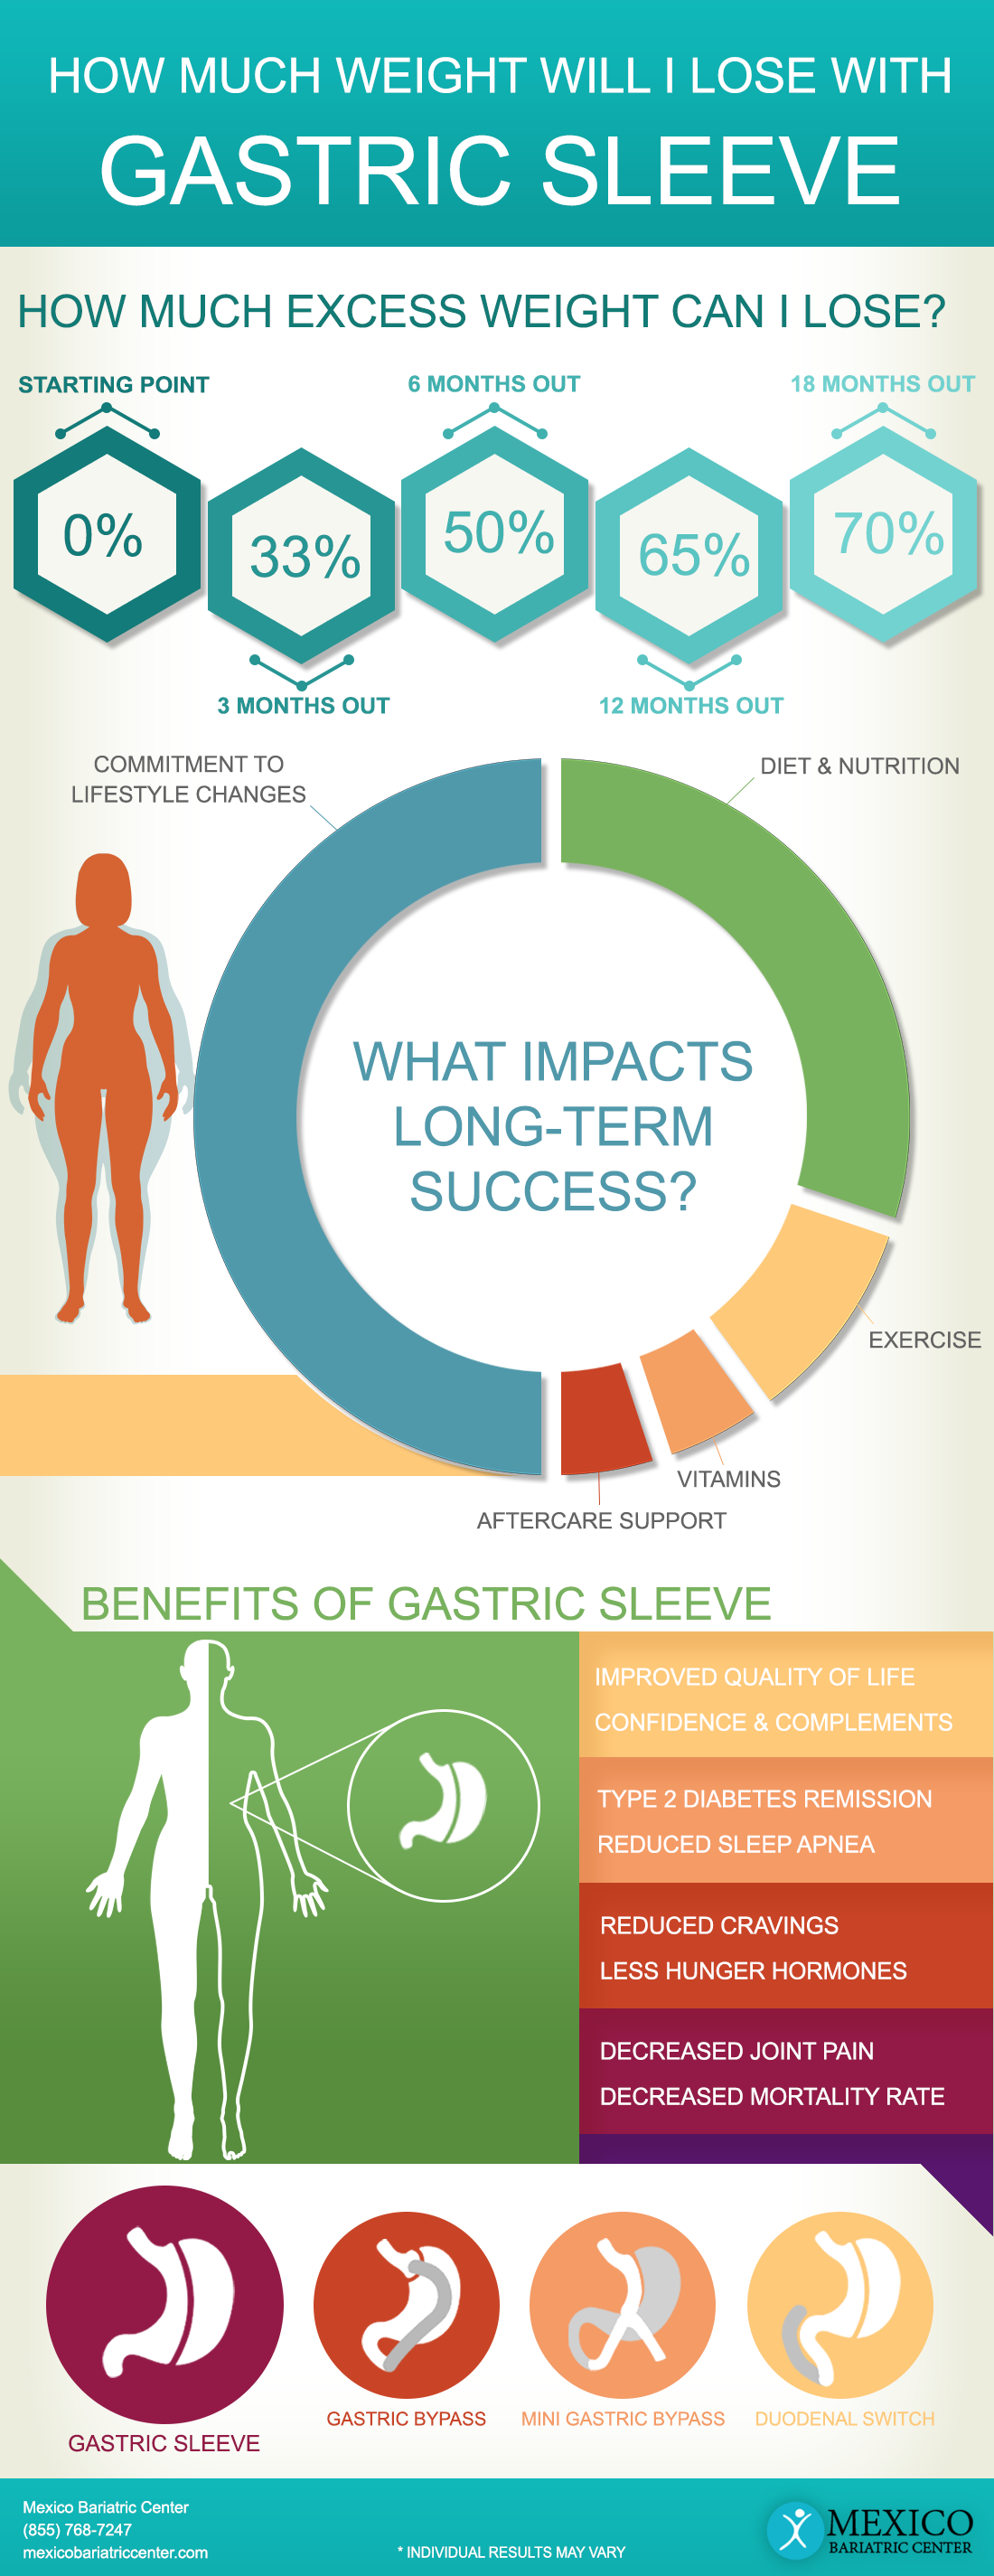 Gastric Sleeve Expected Weight Loss Timeline - Full Procedure